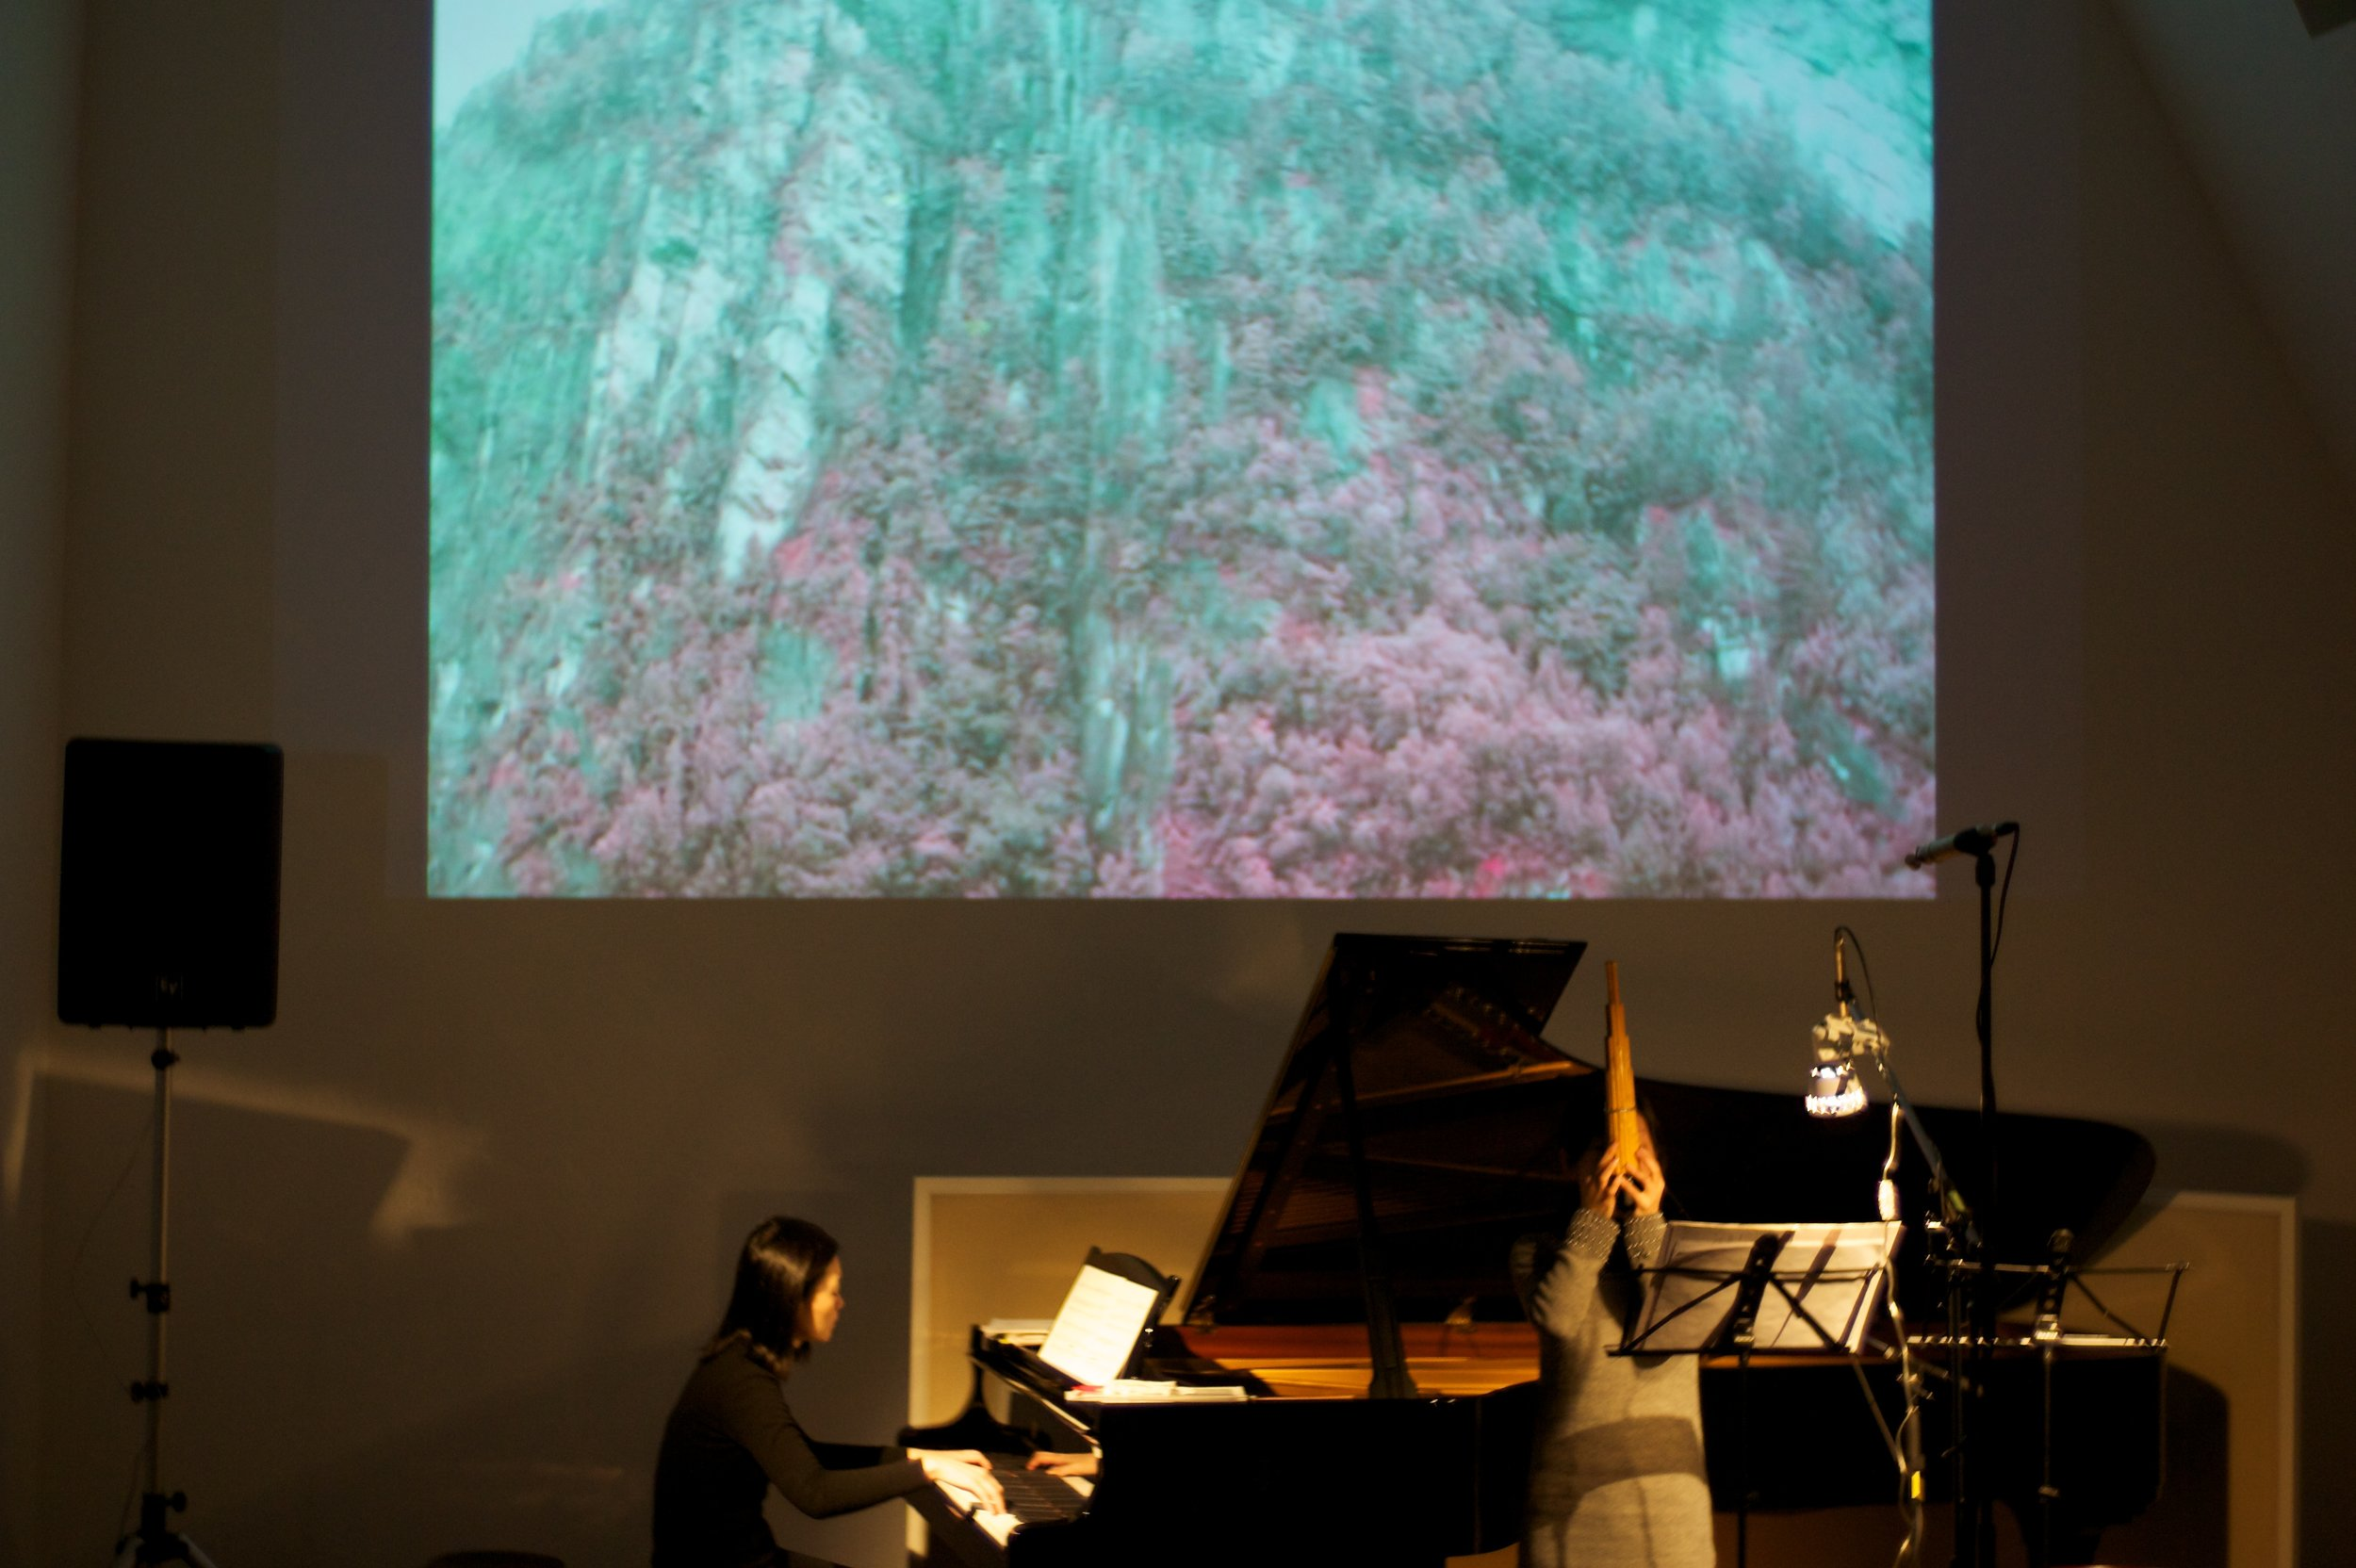 NymphéArt 7th  concert, a fusion of sho, piano, electronics and video works, Tokyo, Japan.  World premiere  of   Ascendant/Descendant